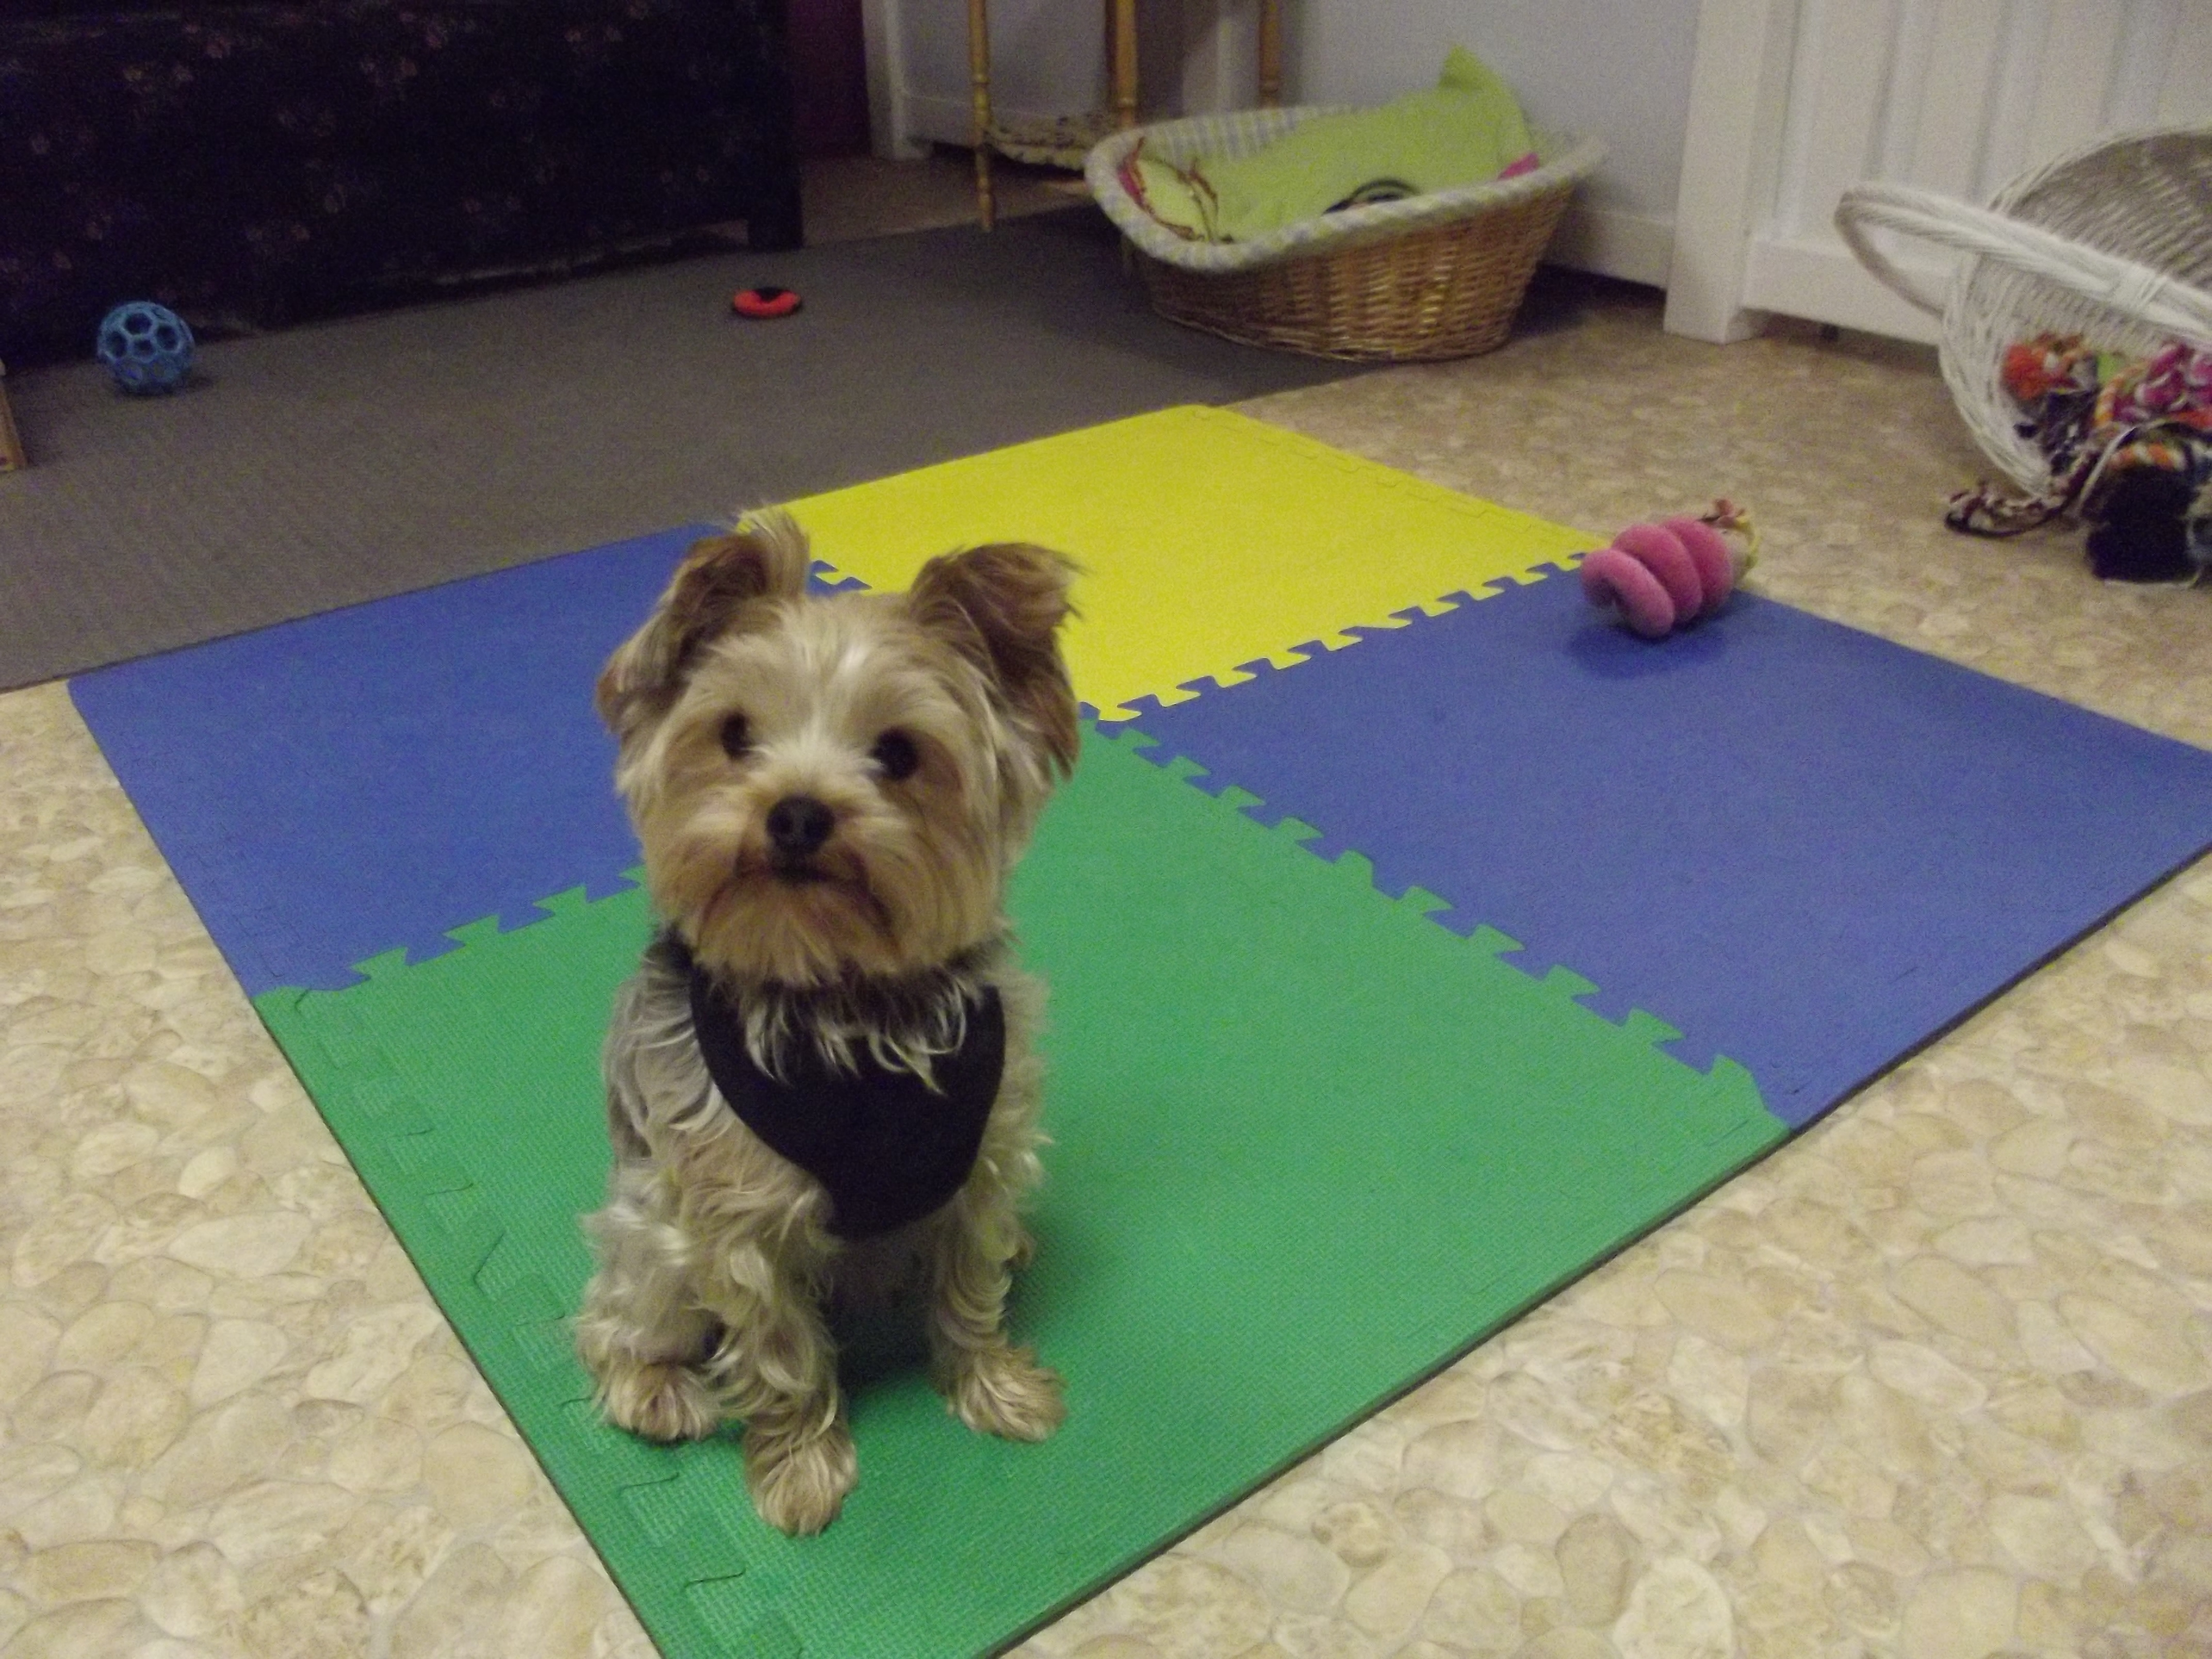 Pet Friendly The Lavish Lair Small Breed Doggy Daycare